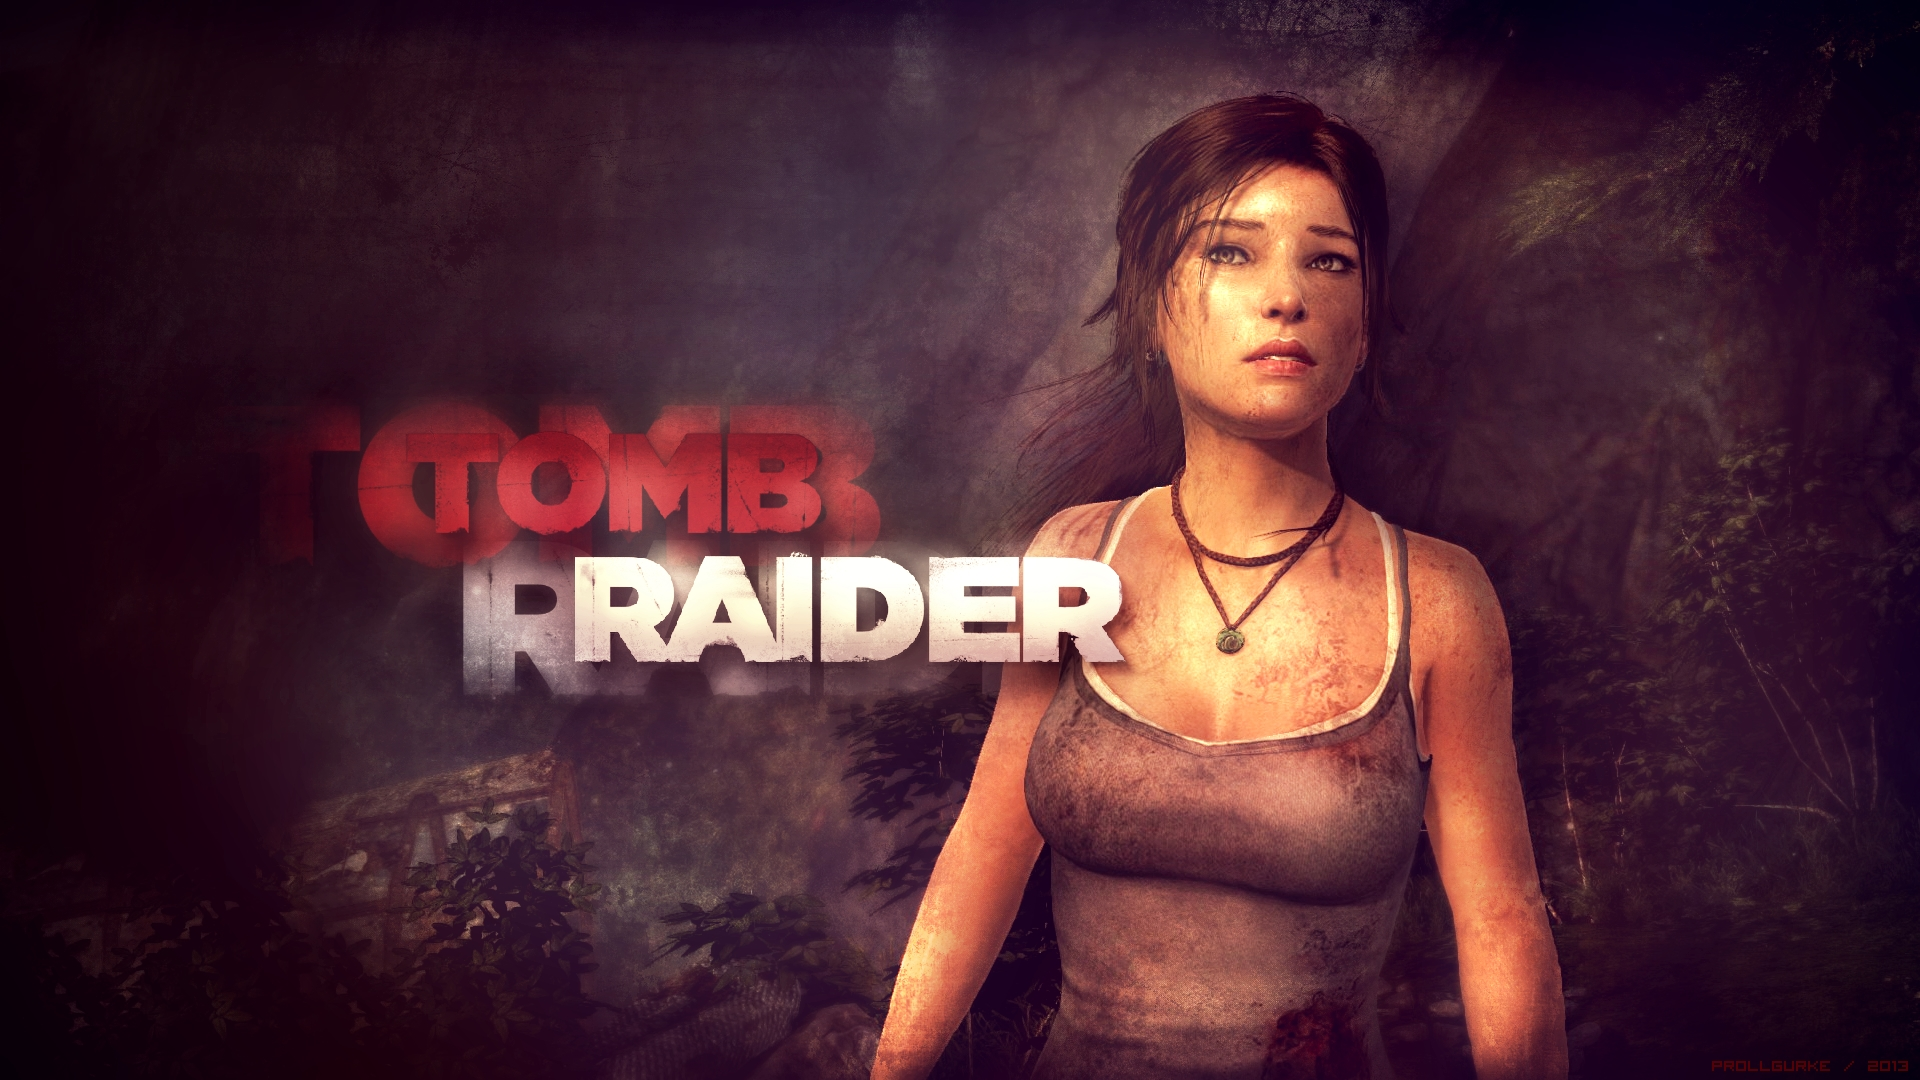 Tomb Raider 2013 Wallpaper: Tomb Raider 2013 (Wallpaper) By Prollgurke On DeviantArt